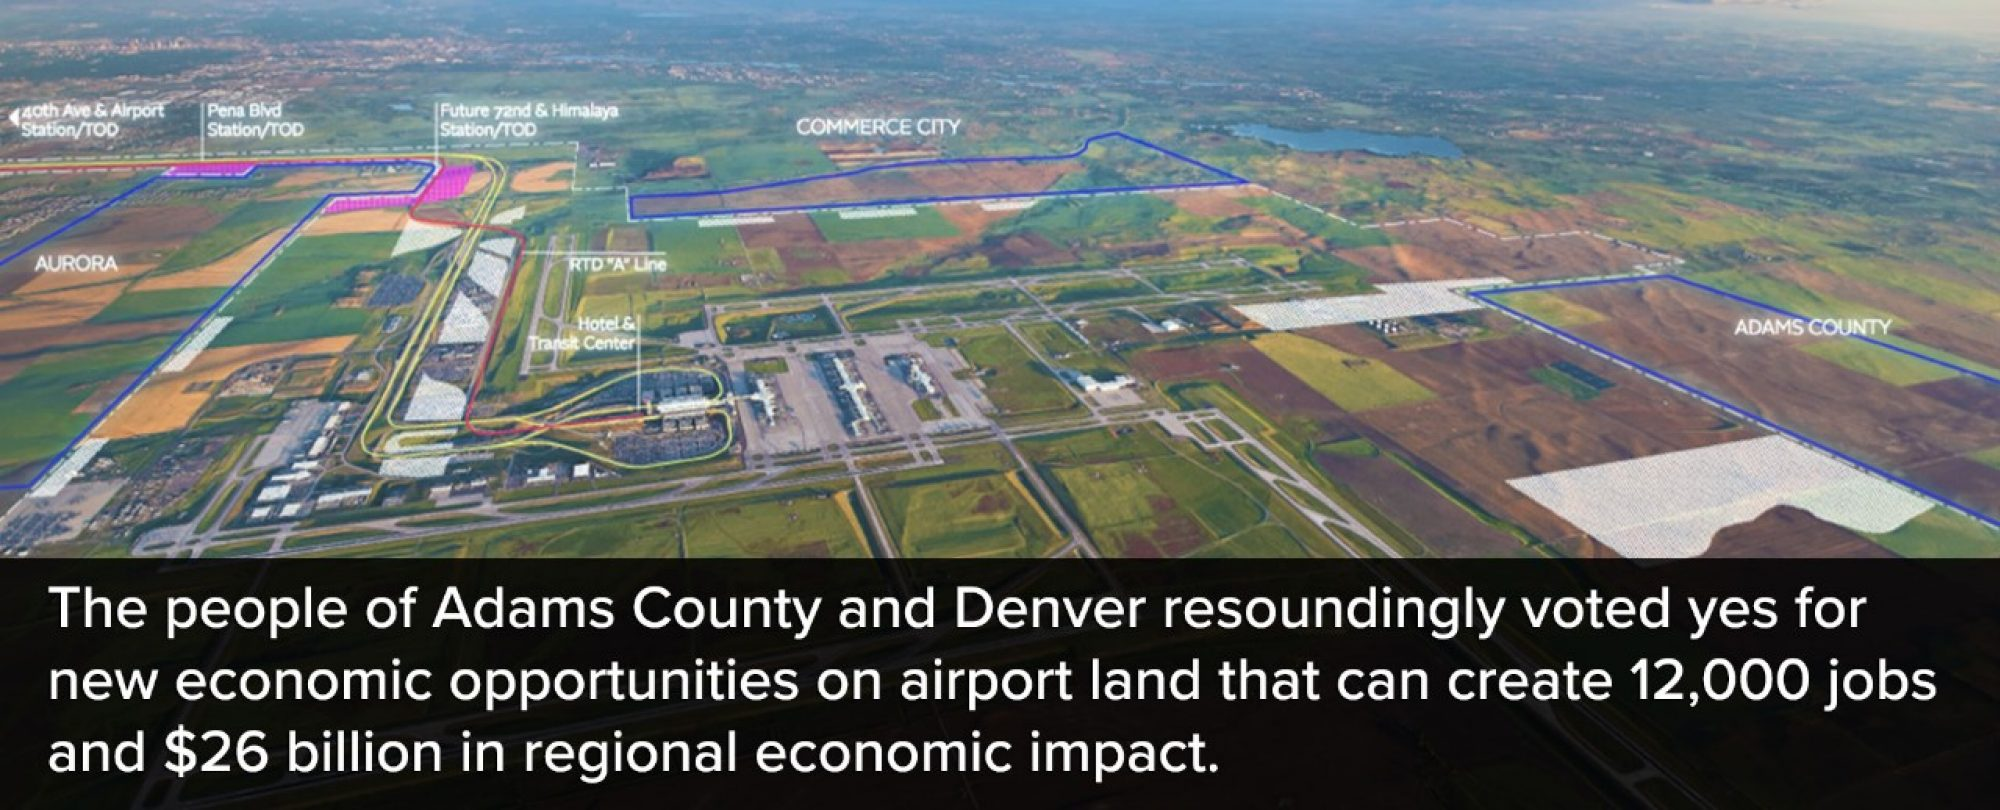 Aerial photo with diagram of region around Adams & Denver County airport land. The people of Adams County and Denver resoundingly voted yes for new economic opportunities on airport land that can create 12,000 jobs and $26 billion in regional economic impact.